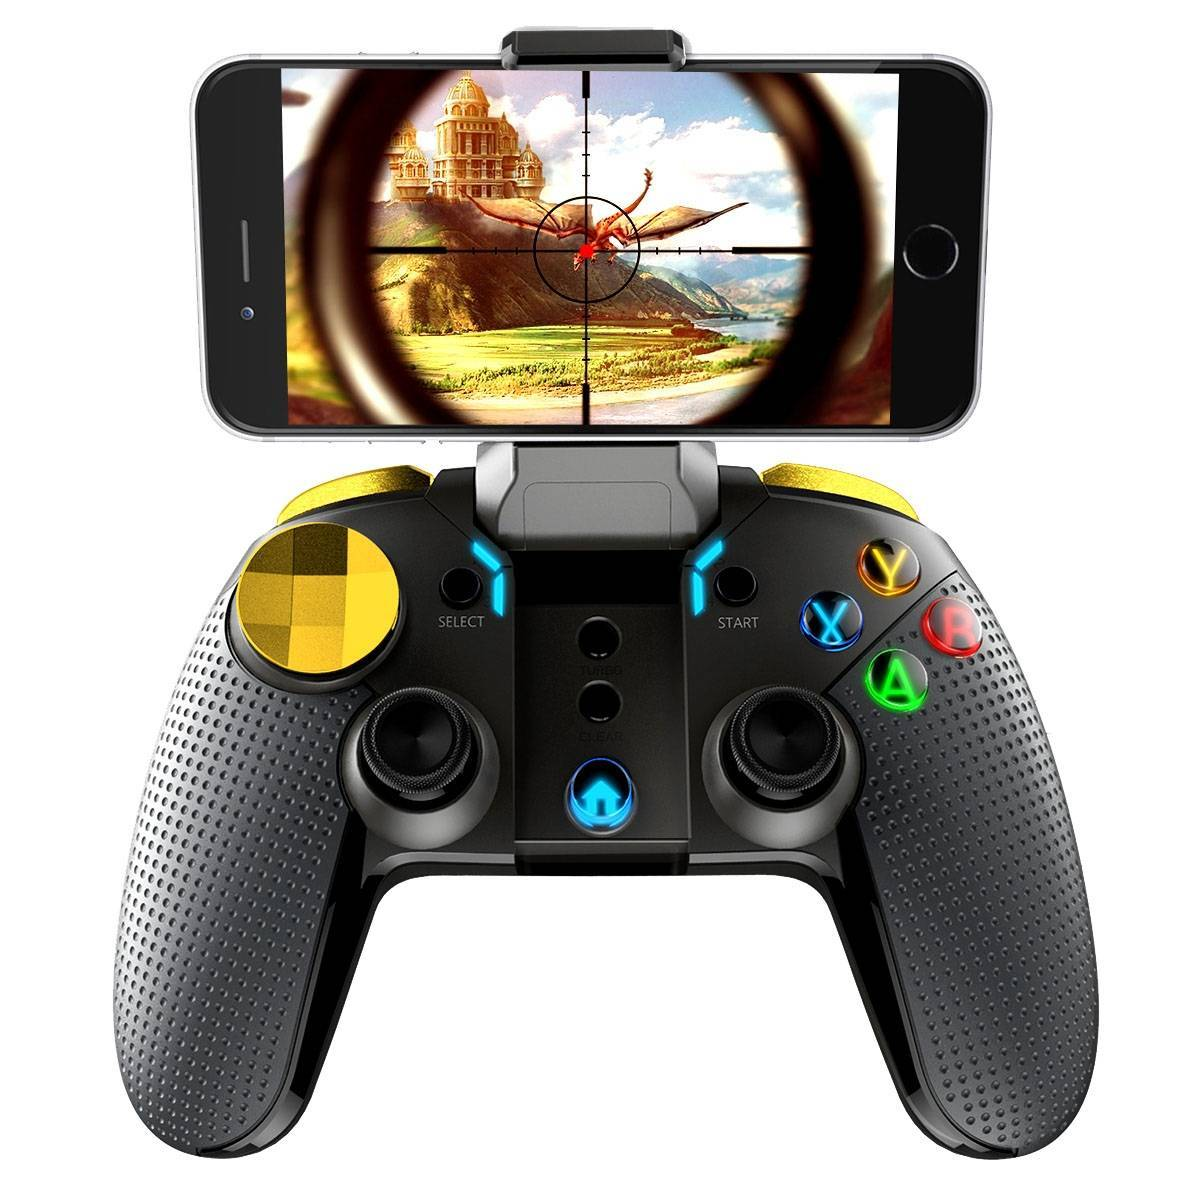 "iPega 9118 ""Golden Warrior"" Gamepad - Playing PUBG on a Smartphone"